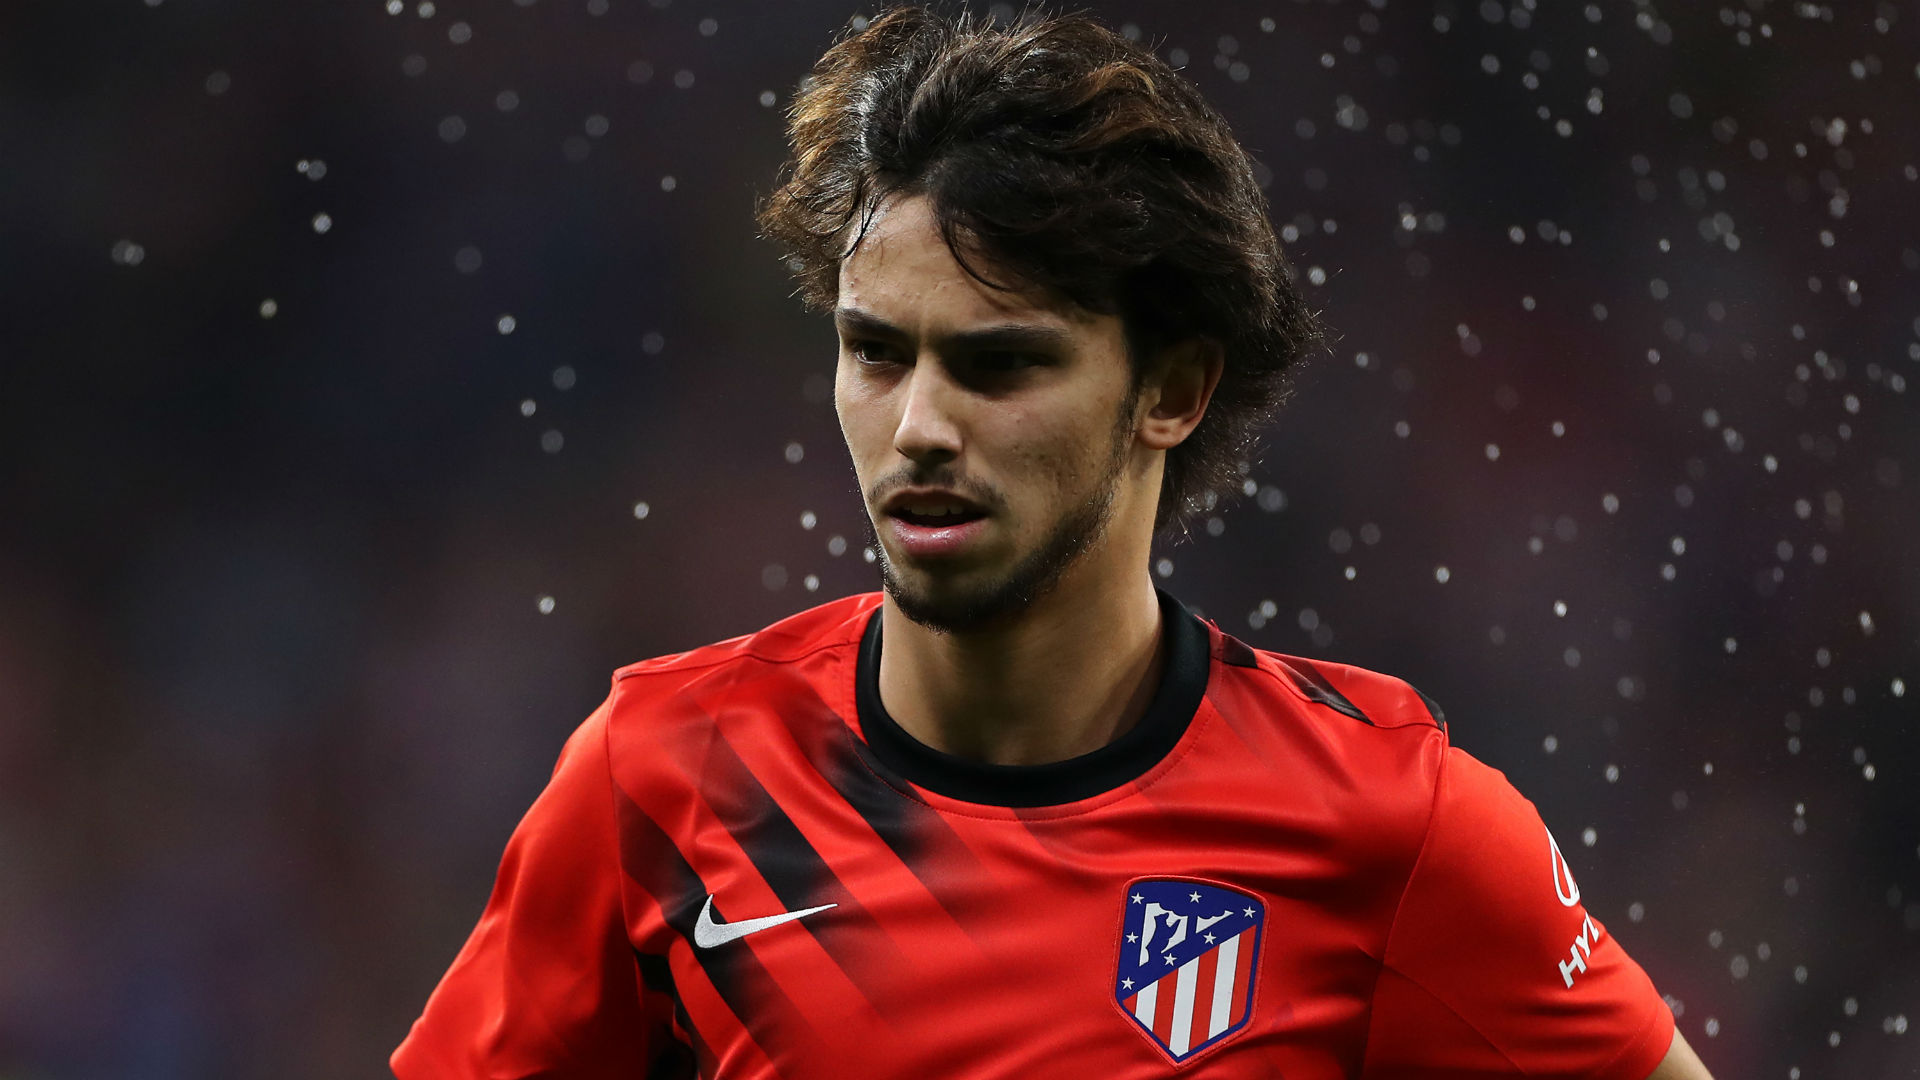 Simeone encouraged by Joao Felix display in Russia